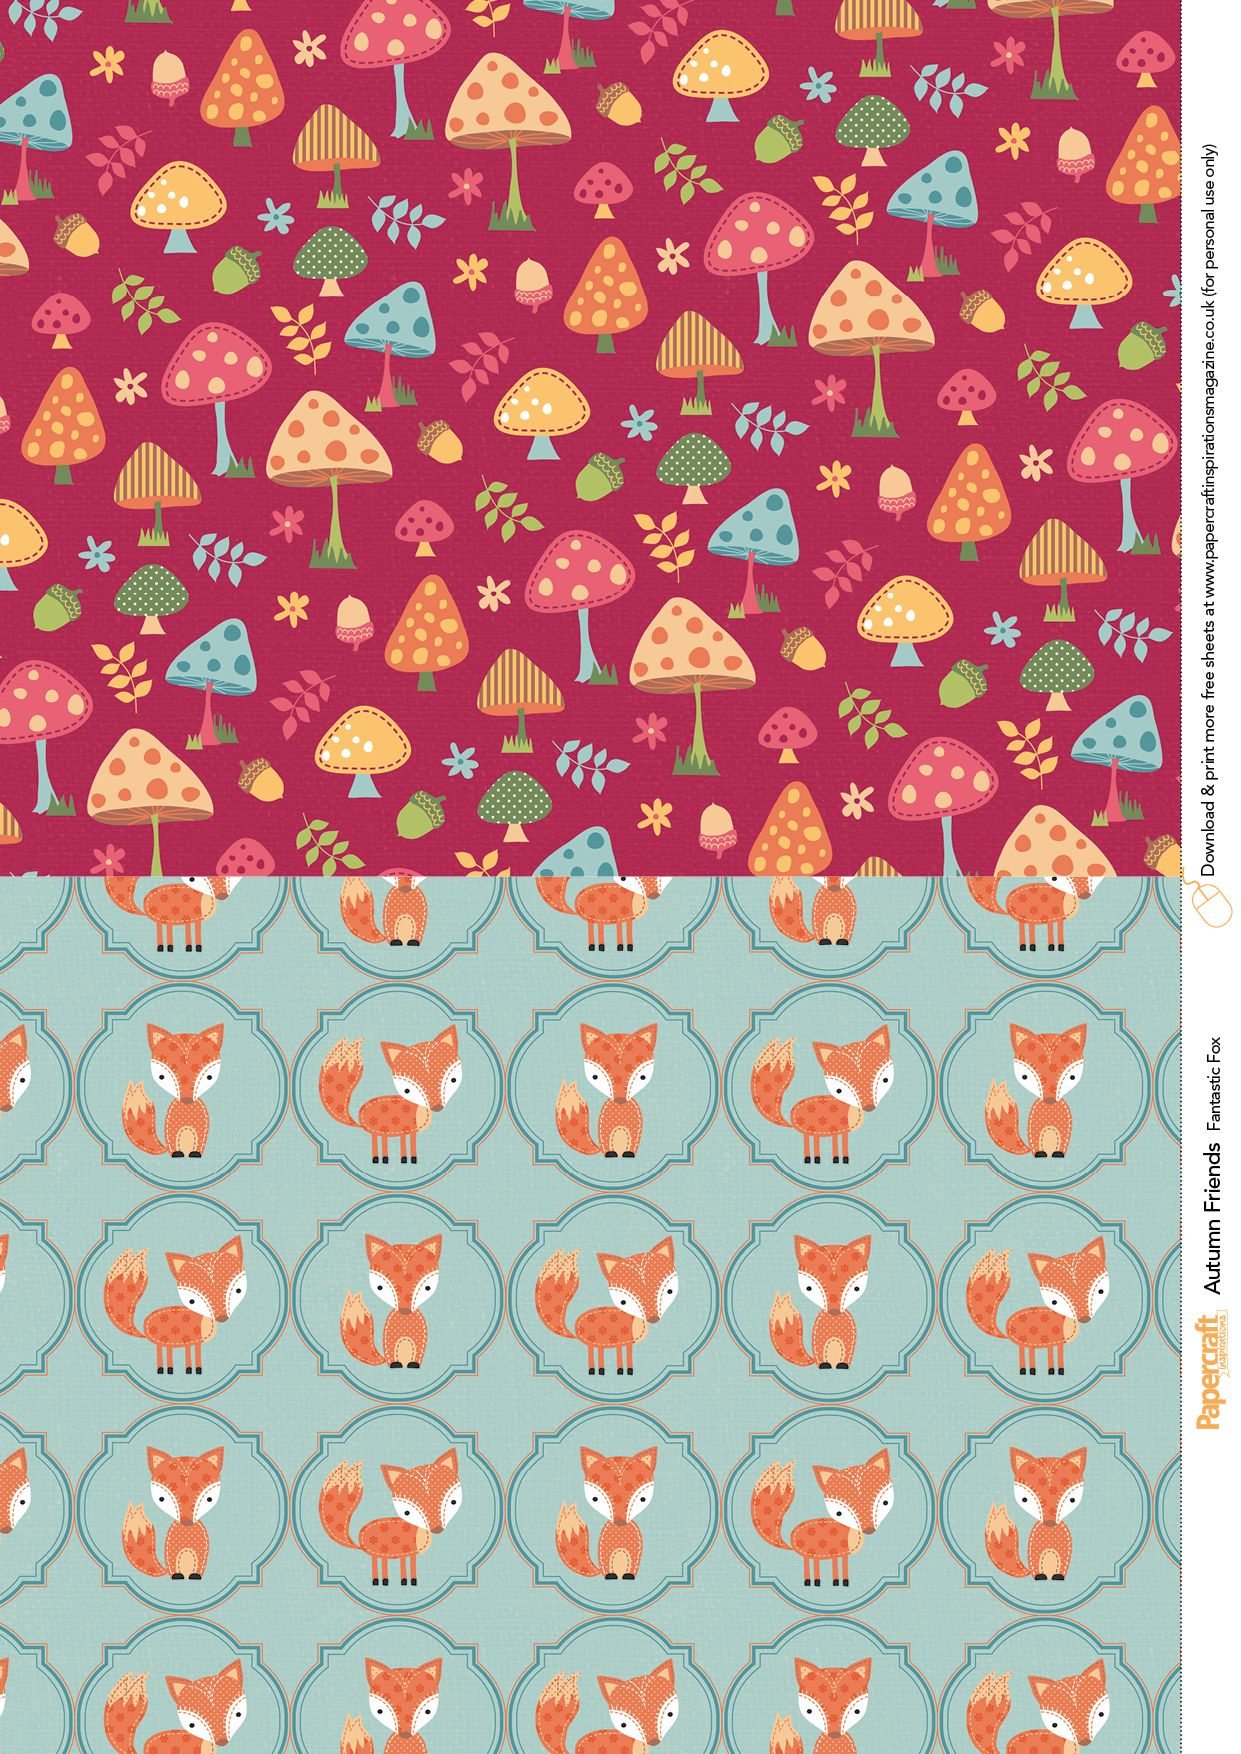 get funky with these cute fox characters and mushroom papers